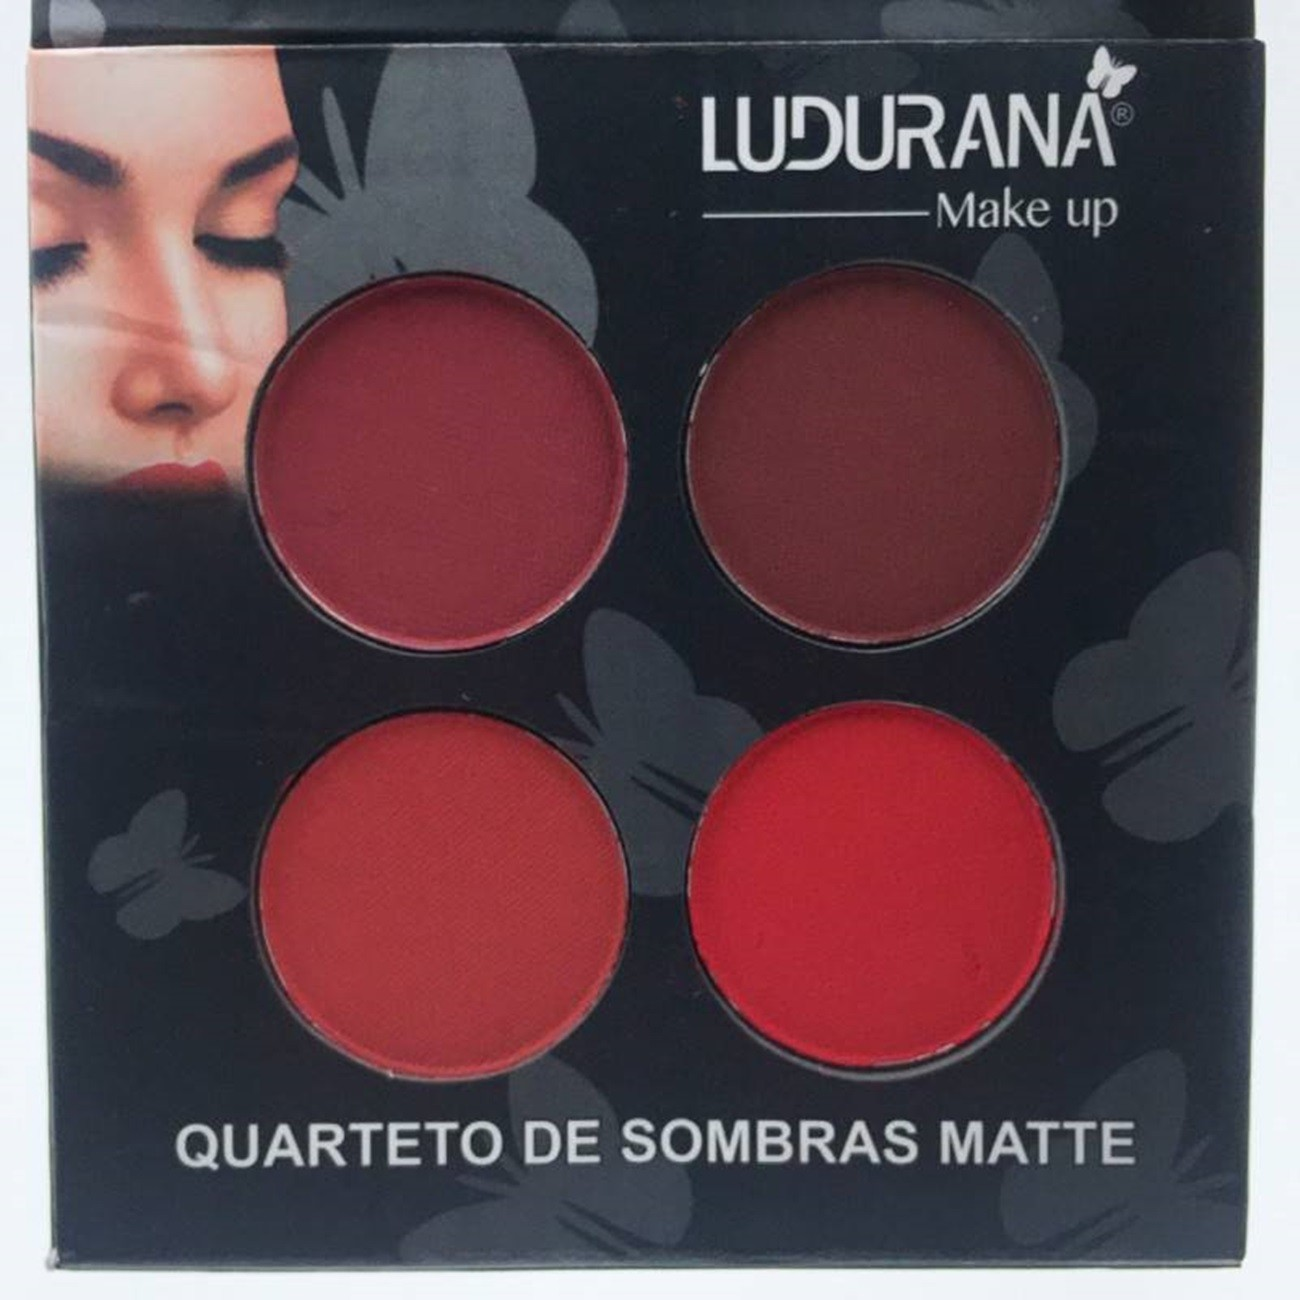 Quarteto de Sombras Matte - Ludurana Make up